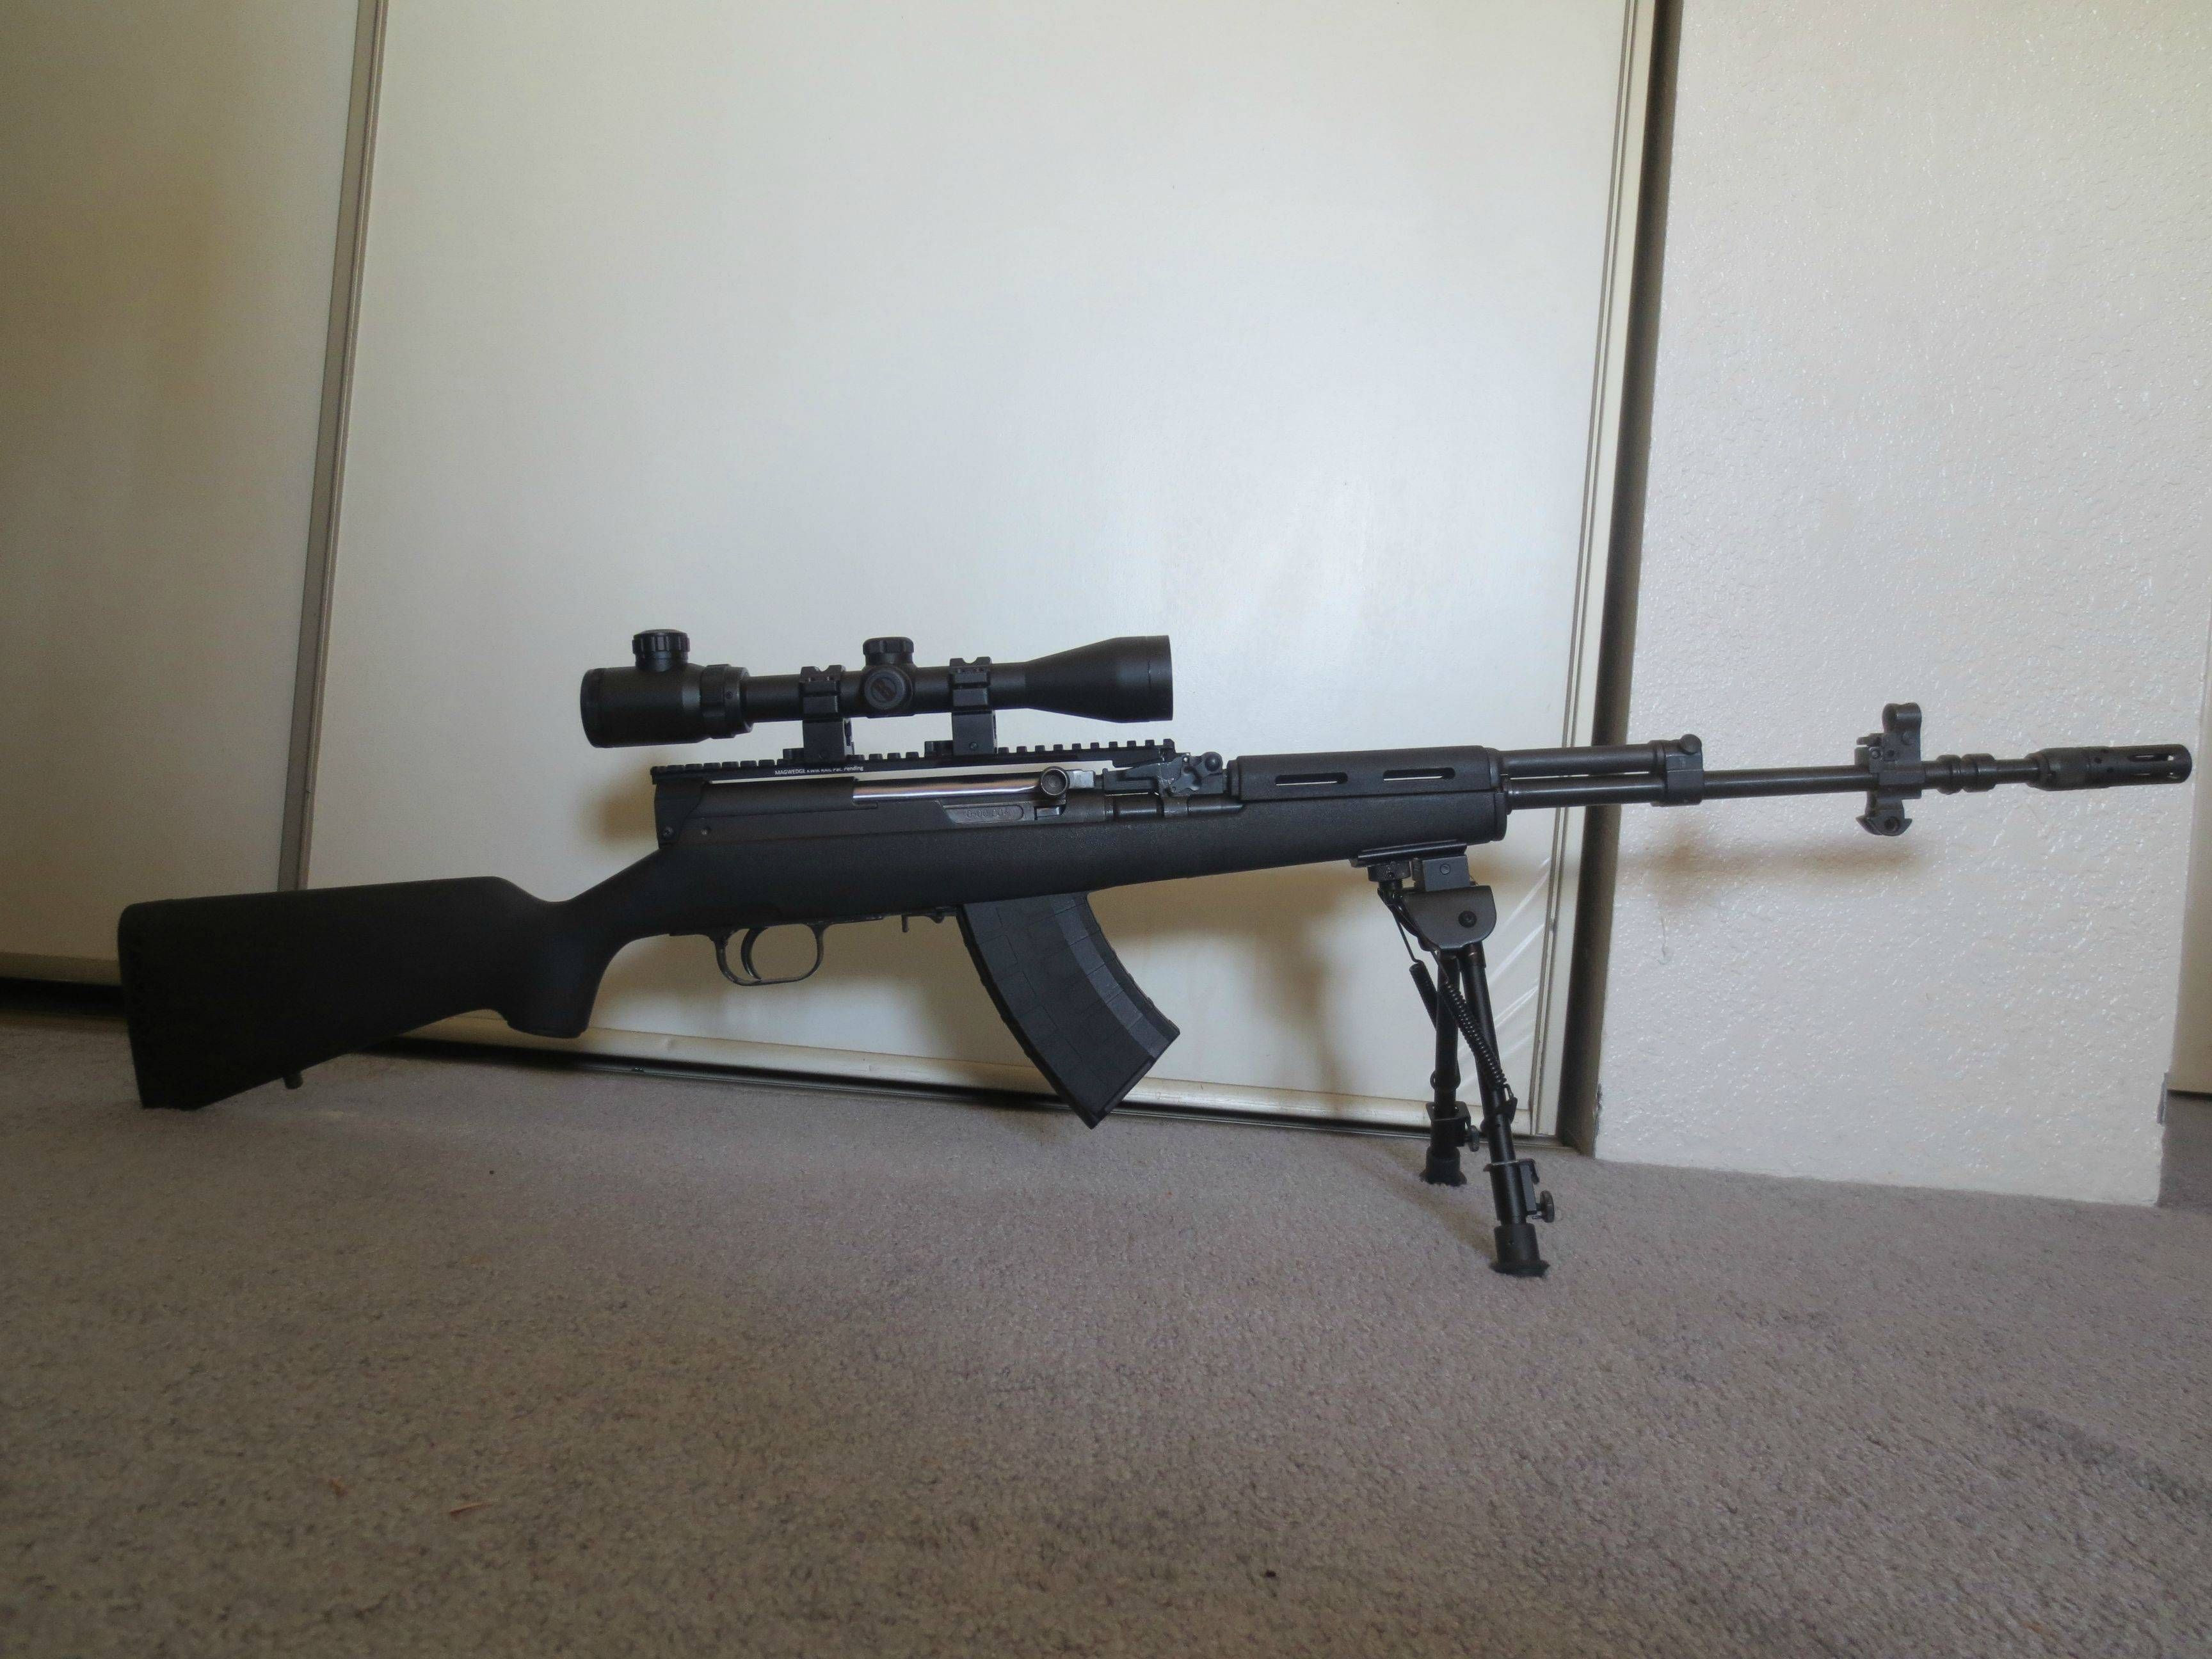 20+ Sks Stock Mods Pictures and Ideas on Meta Networks